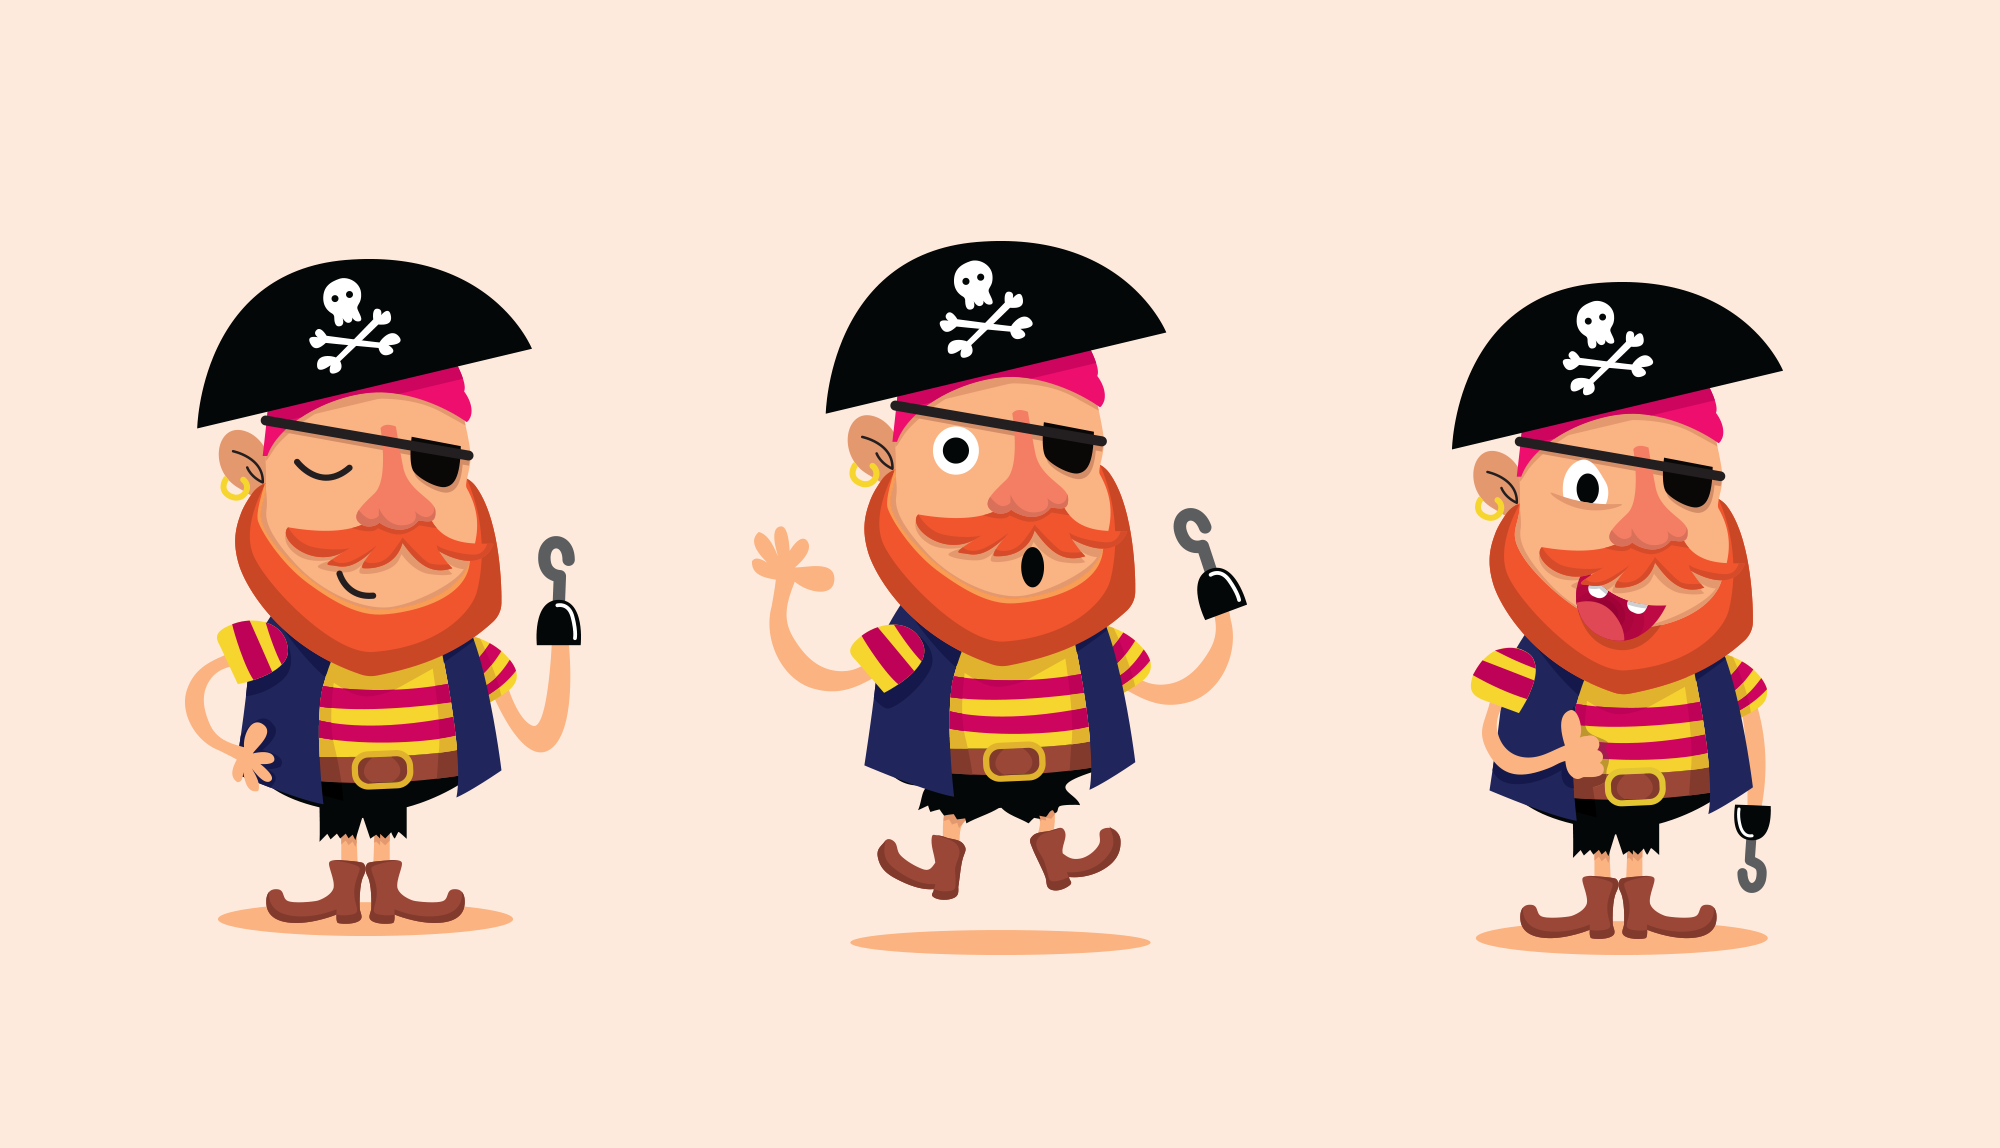 A pirate character with a hook for a hand